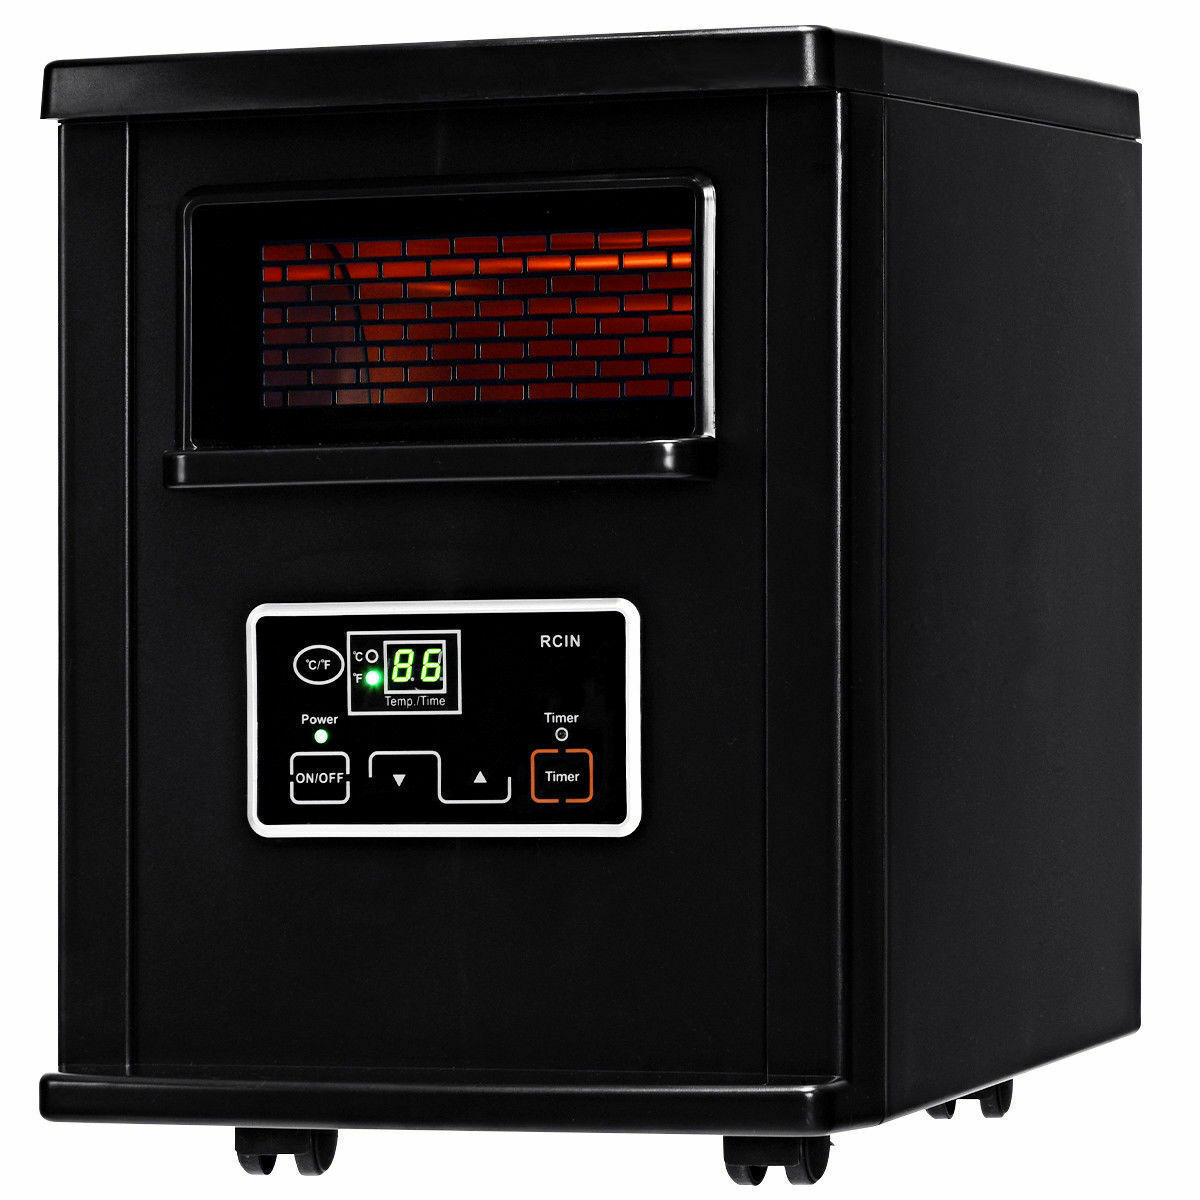 Picture of Portable Infrated Heater w/ Remote Control Black 1500W